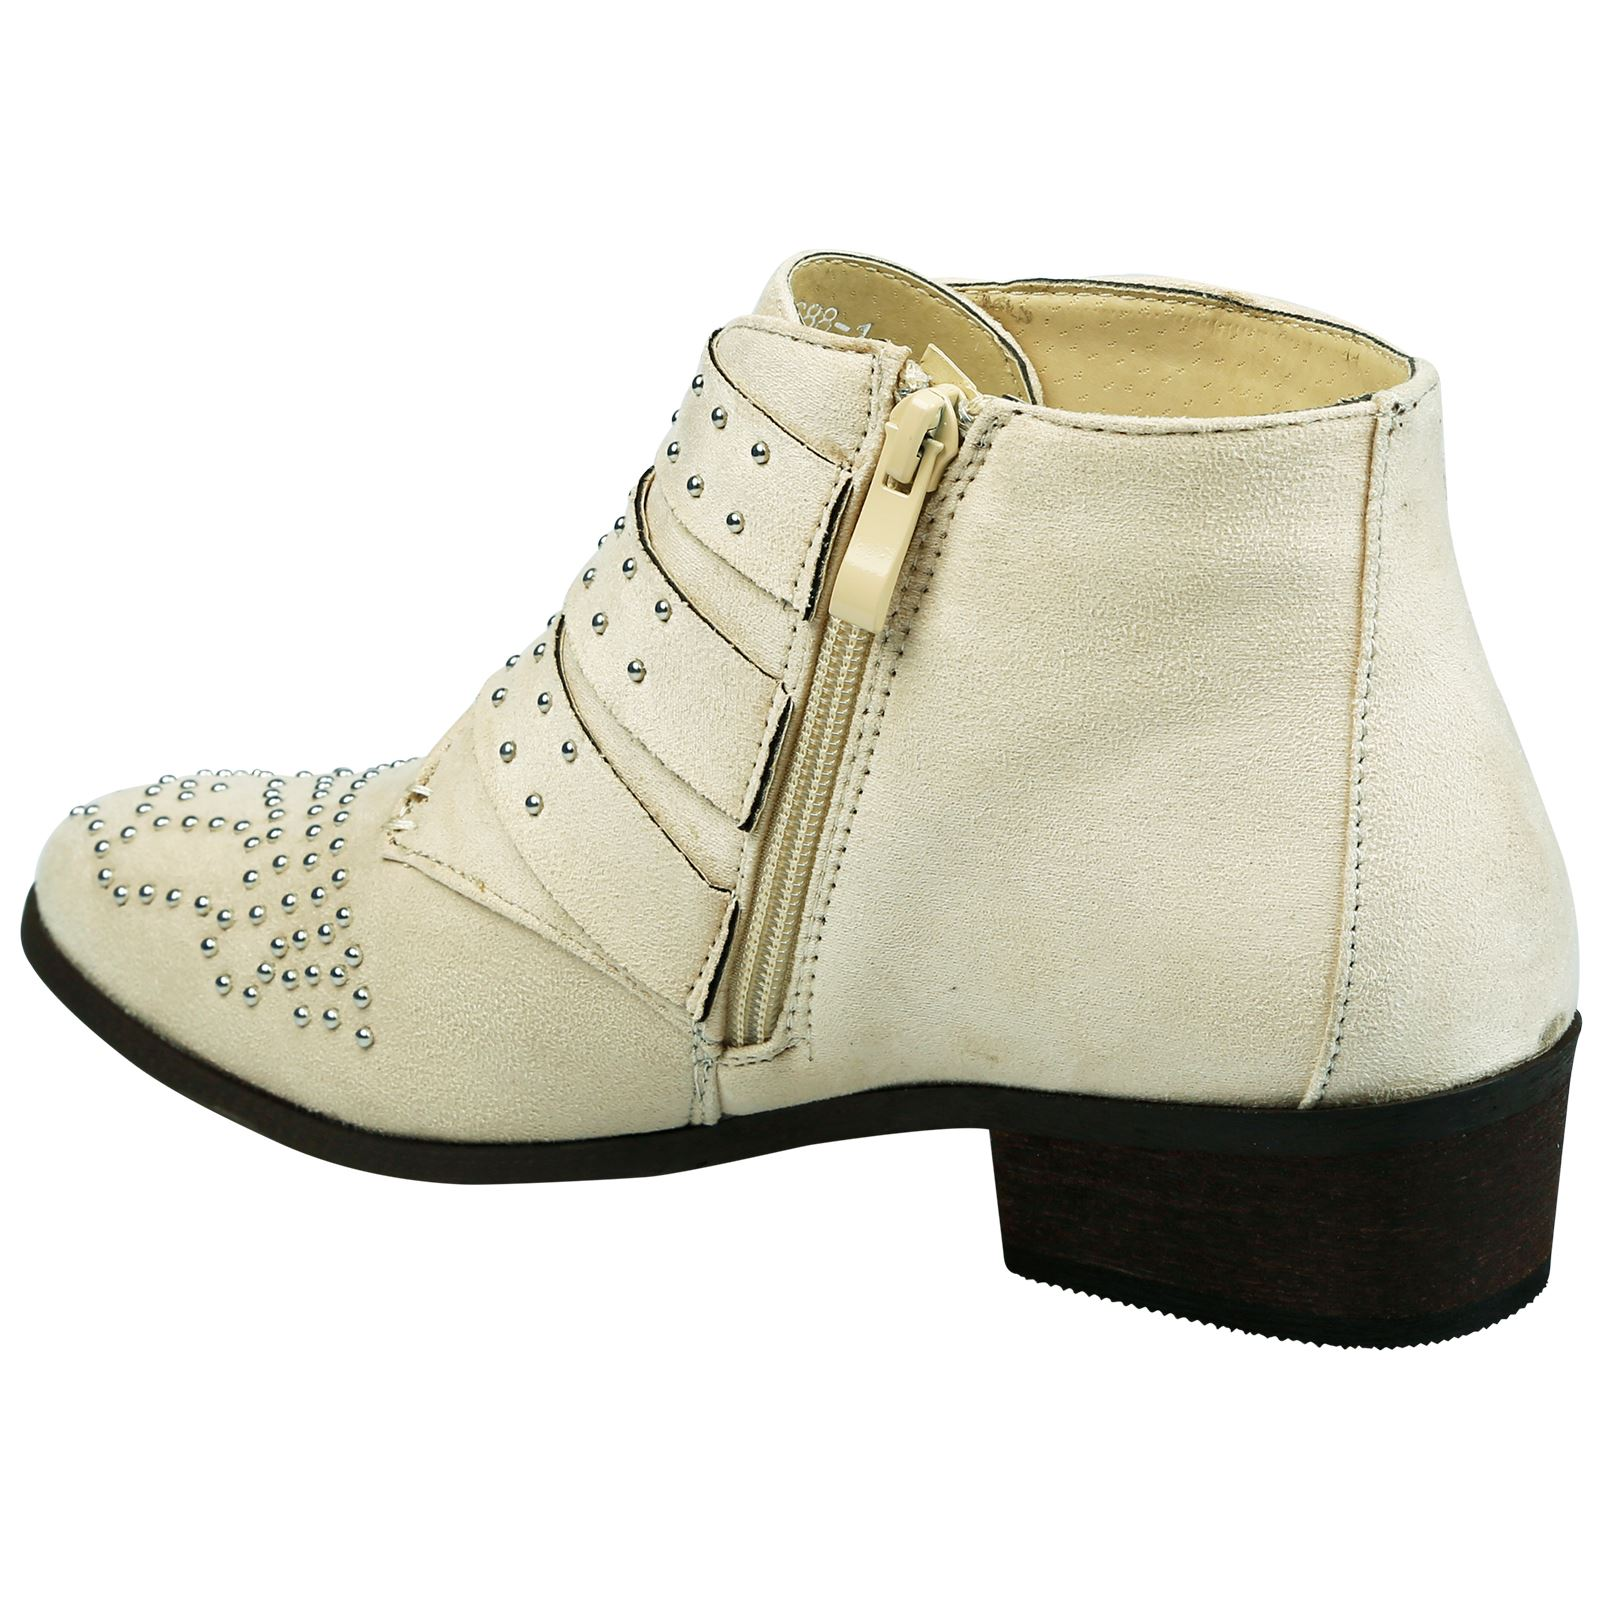 Liv-Womens-Flats-Low-Heels-Buckle-Strappy-Biker-Ankle-Boots-Ladies-Shoes-Studded thumbnail 5